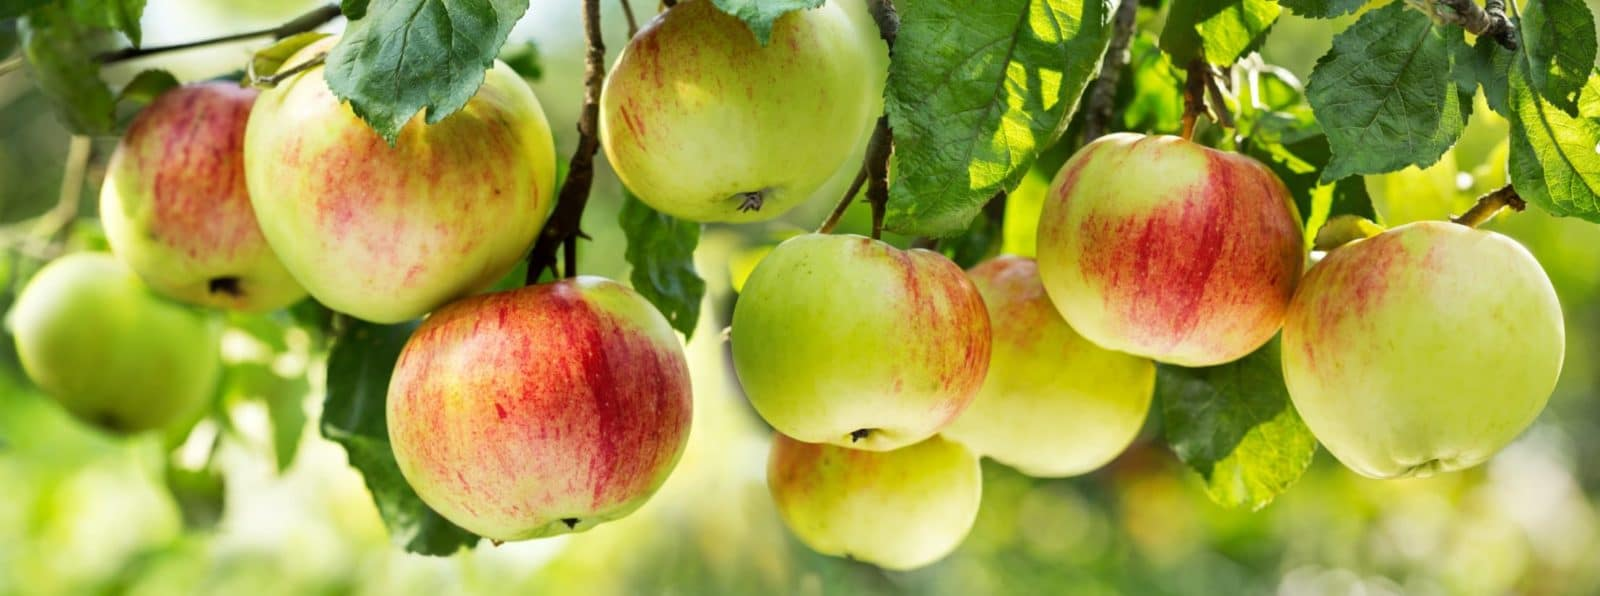 ripe apples on branches of a tree